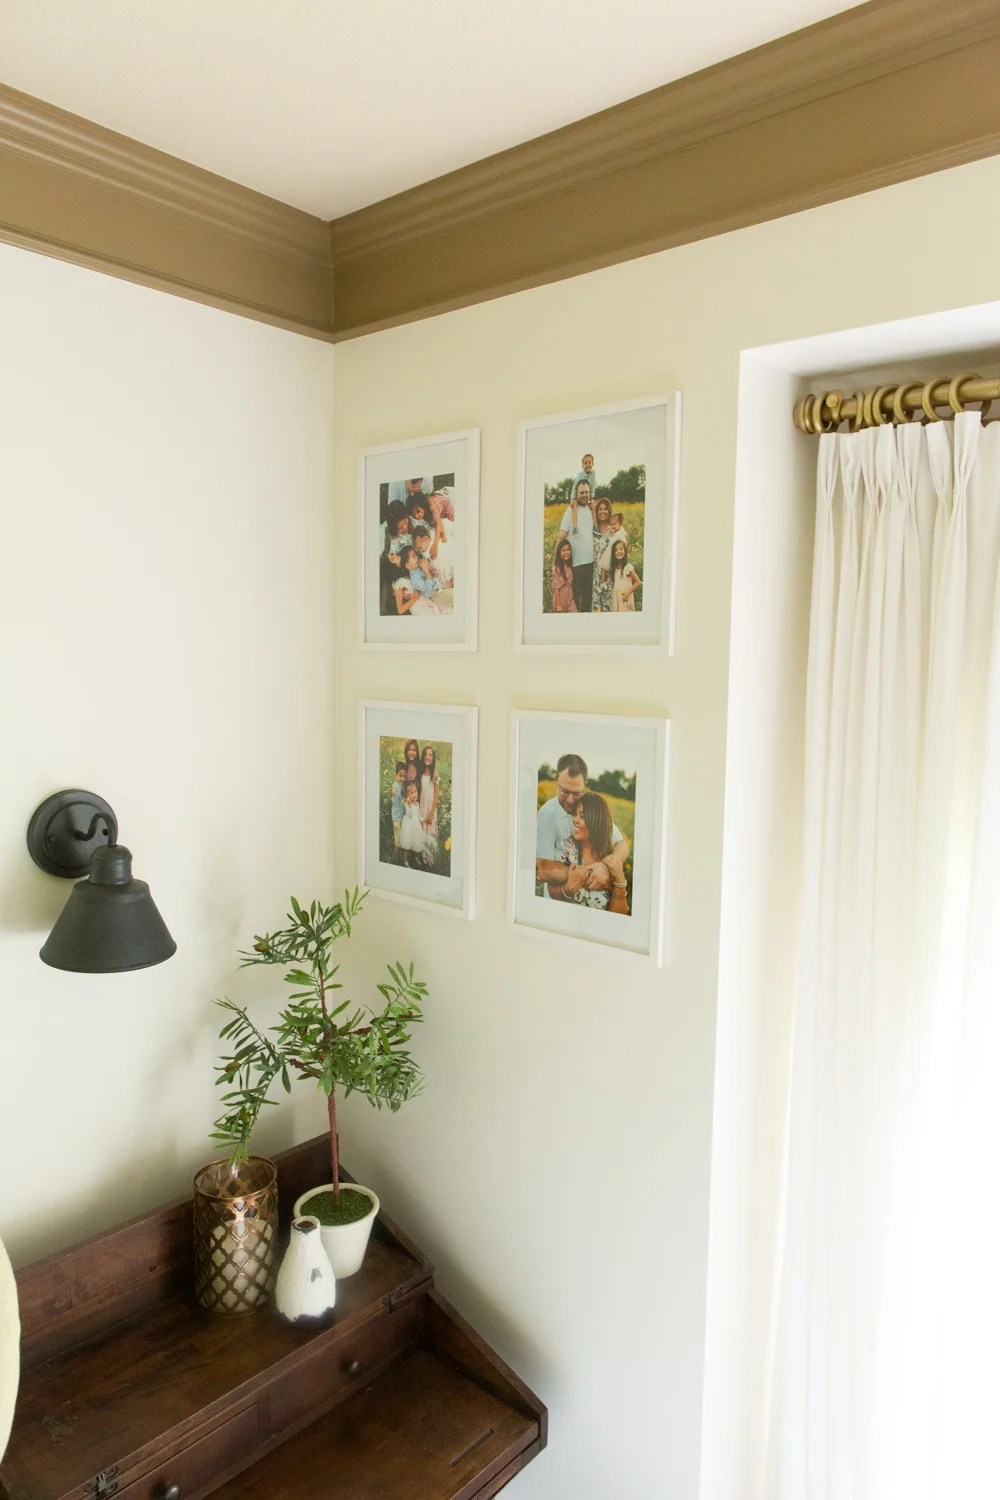 DIY Wall Sconce Lighting without Electricity or Power ... on Sconces No Electric Power id=38473